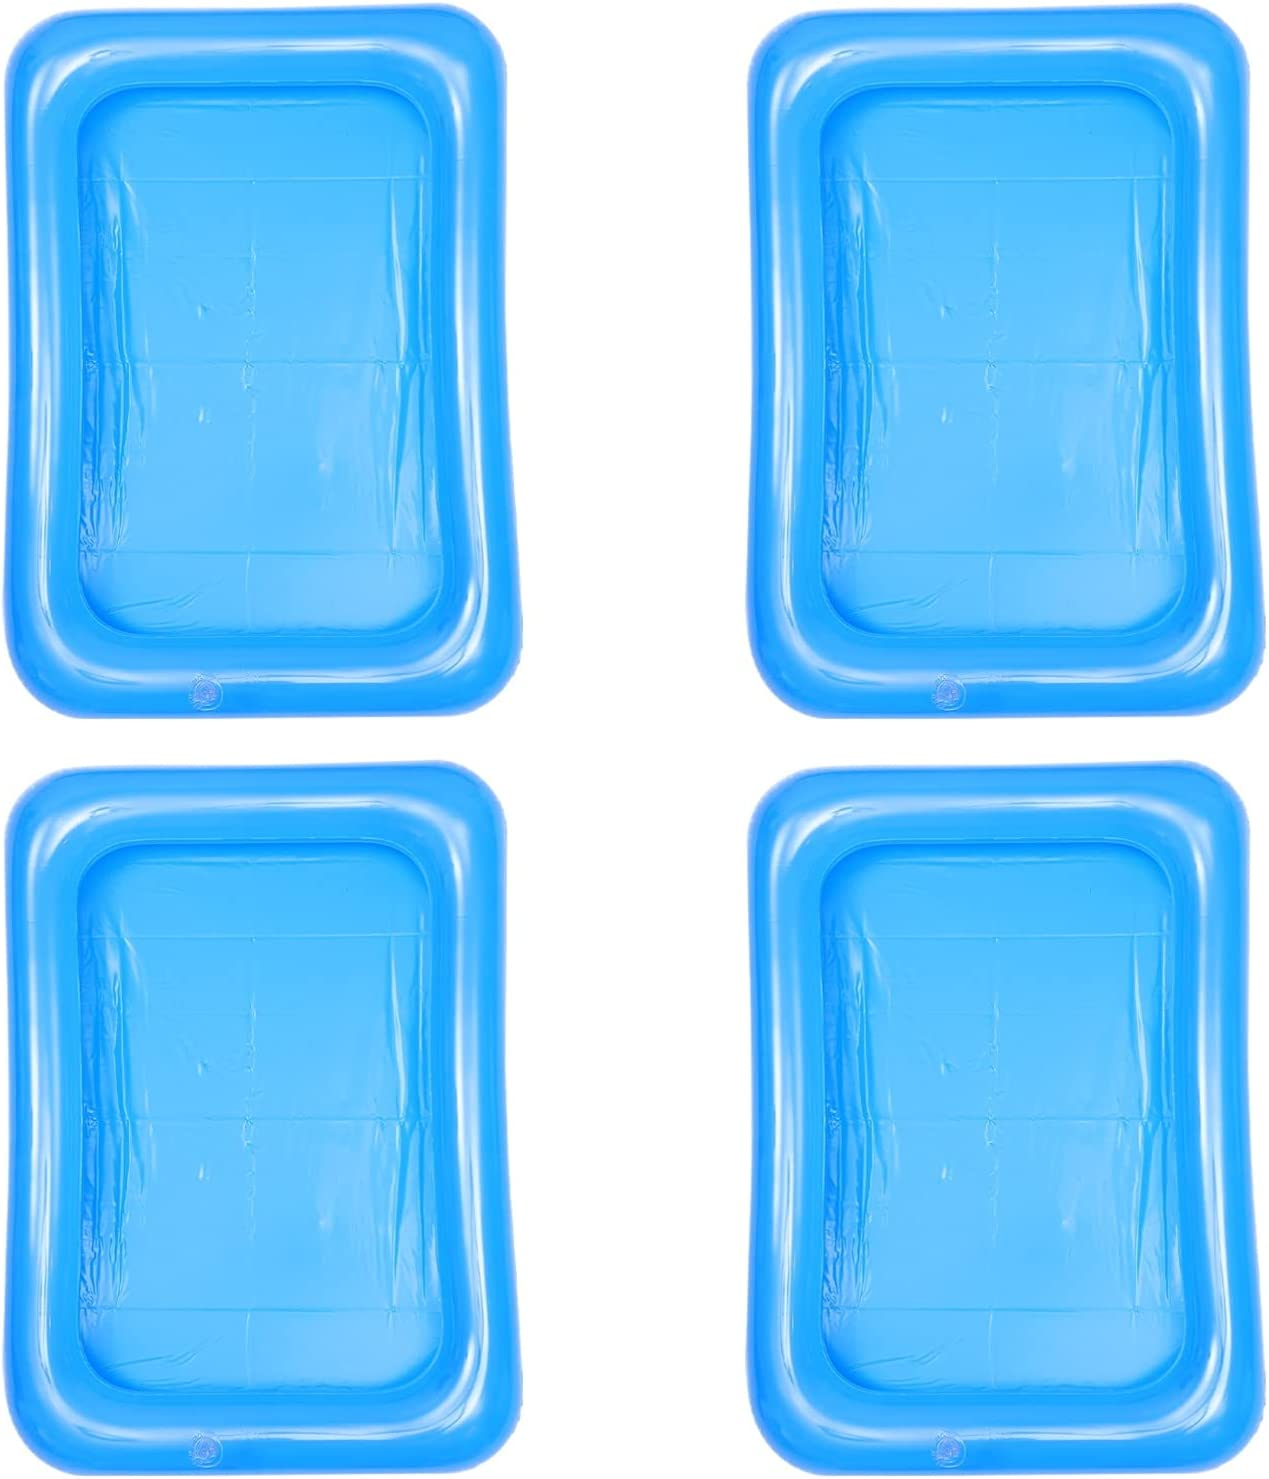 FRCOLOR 4Pcs Inflatable Serving Bar Ice Serving Buffet Salad Cooler Food Containers Summer Drink Cooler Floating Tray for Picnic Pool Party Supplies 60x45cm Transparent